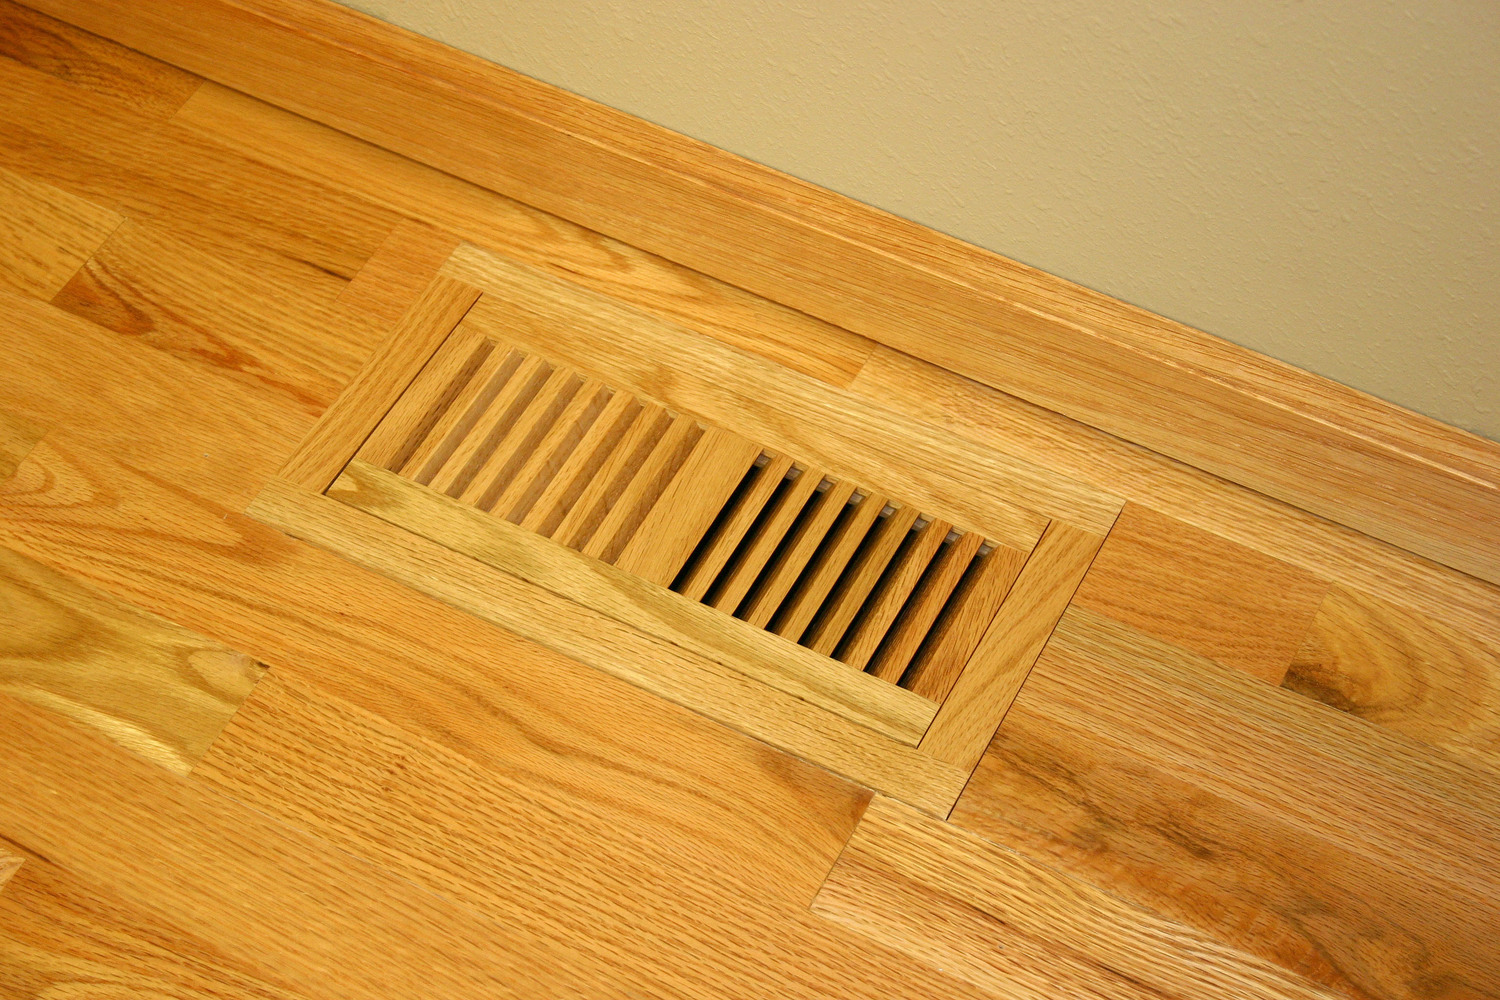 mount wooden ideas sizing flush x vents throughout floor registers flooring wood